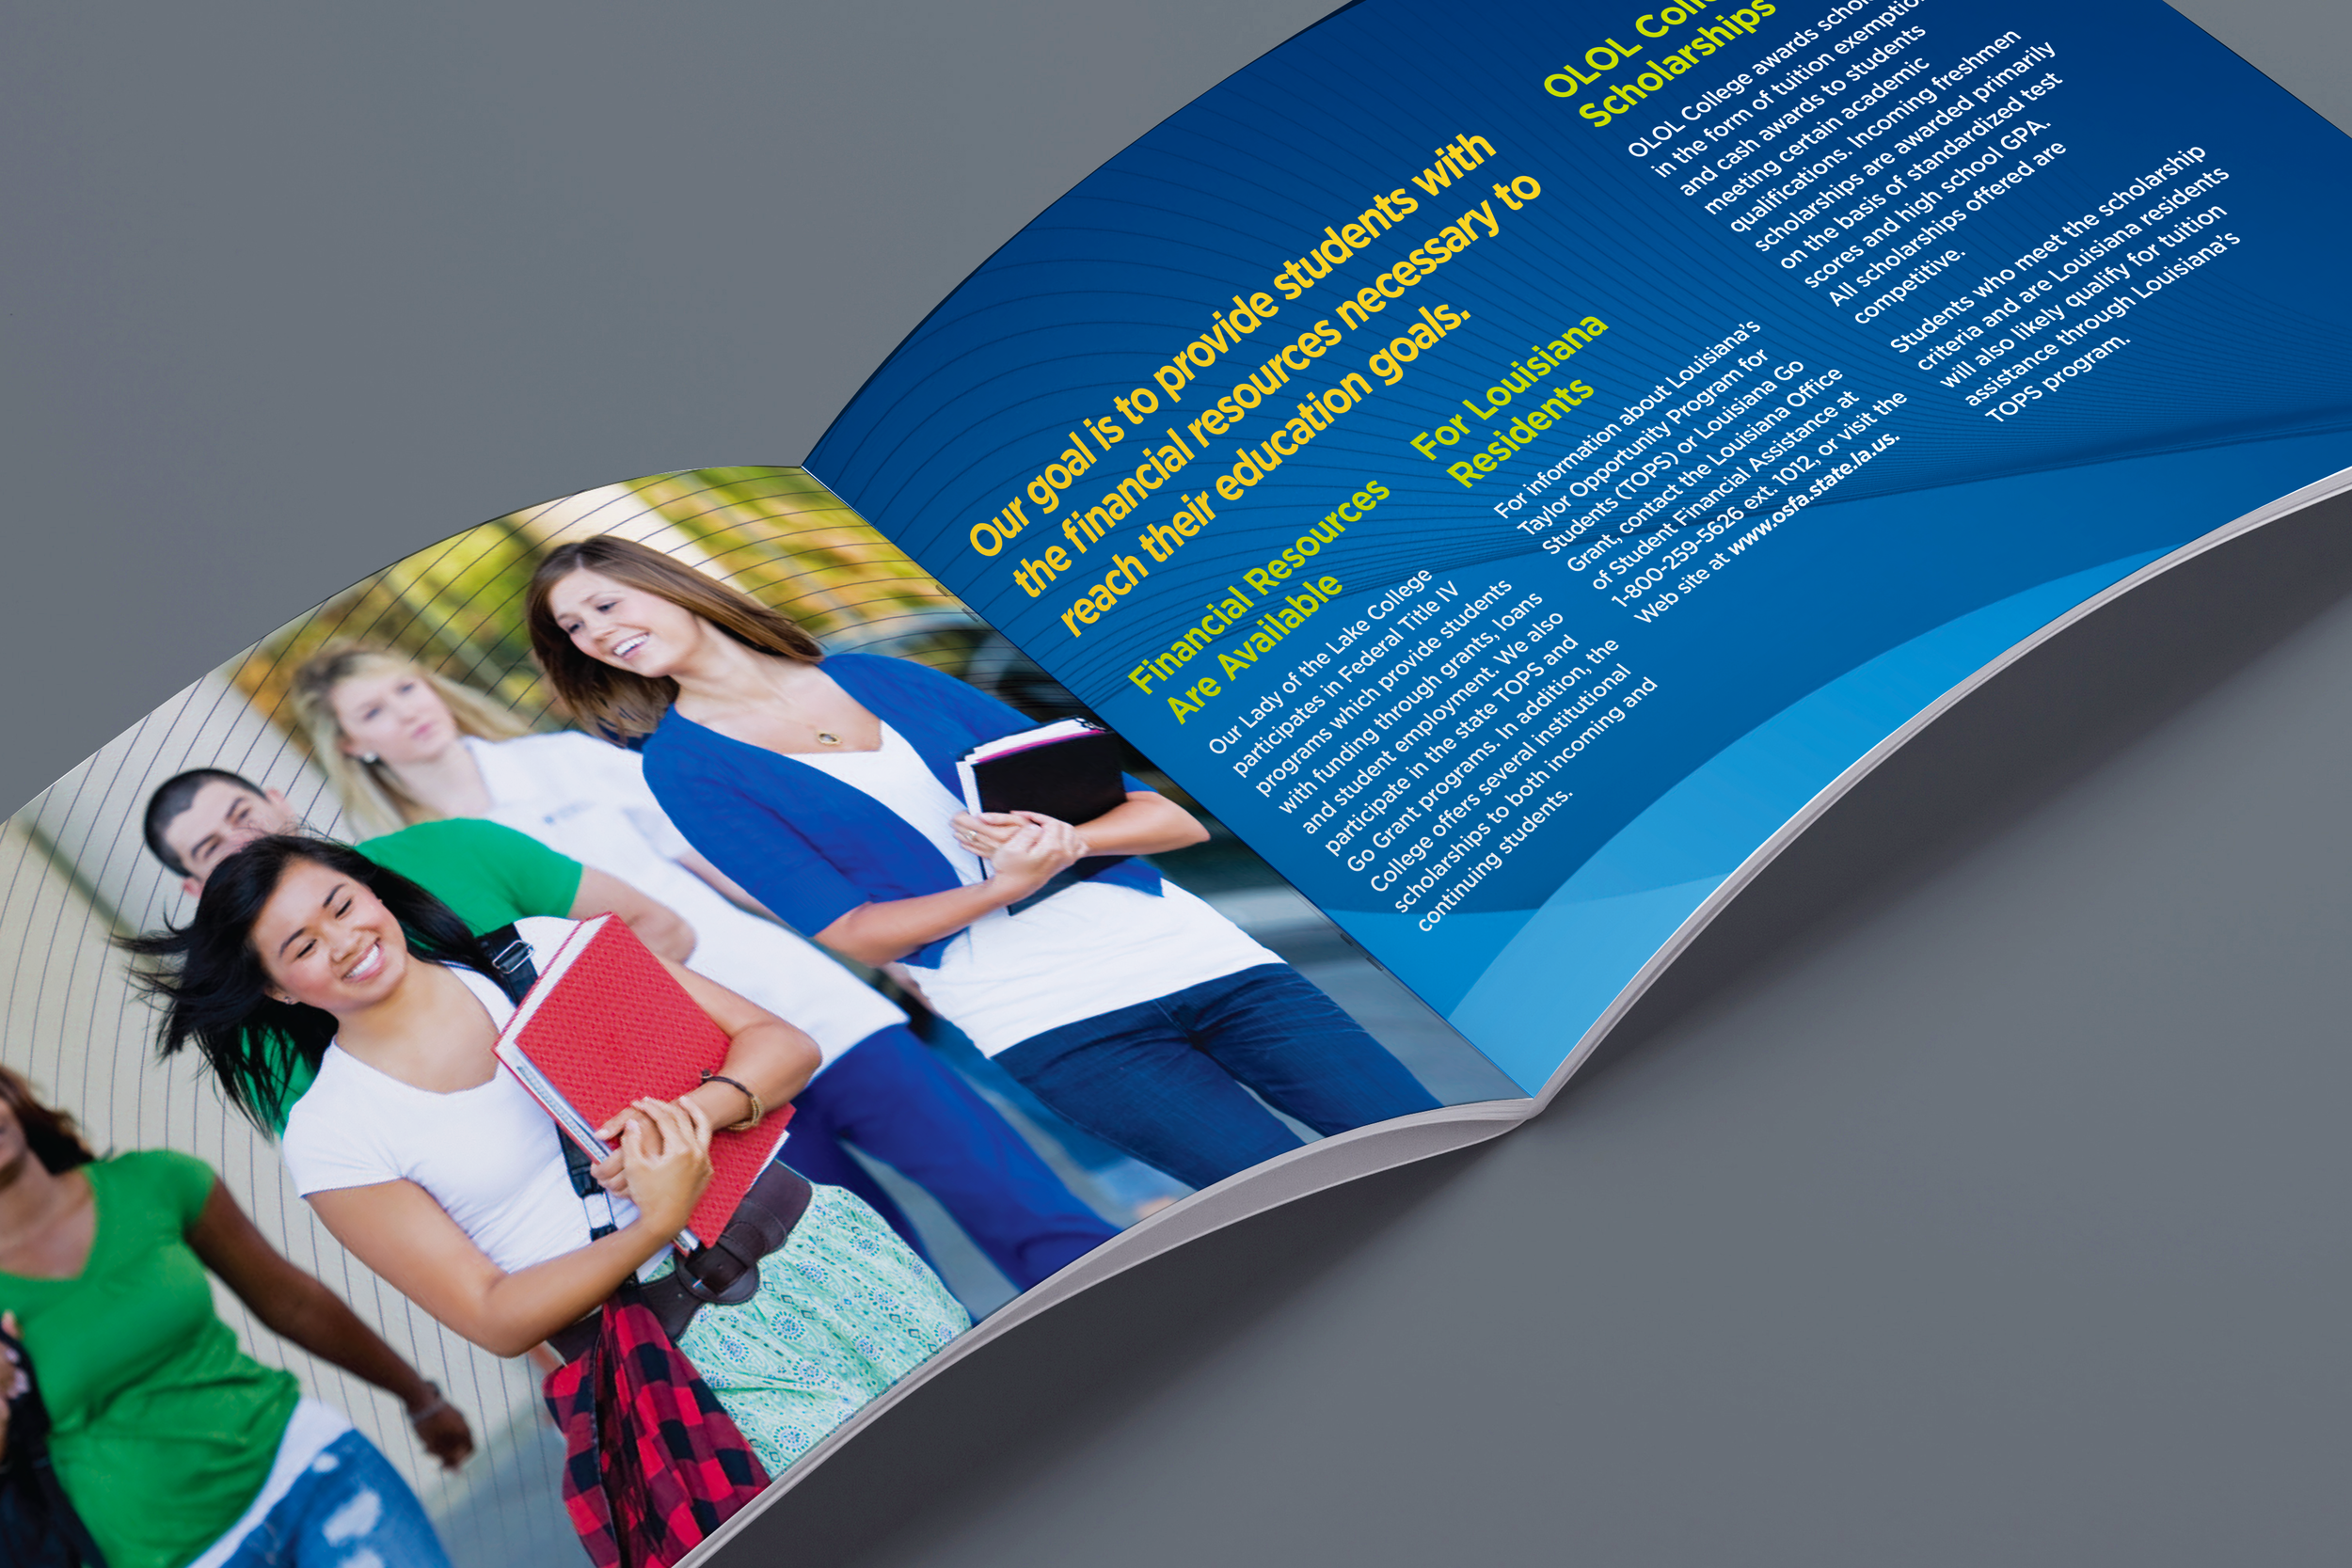 OLOL CollegeScholarship Brochure  created for Diane Allen and Associates